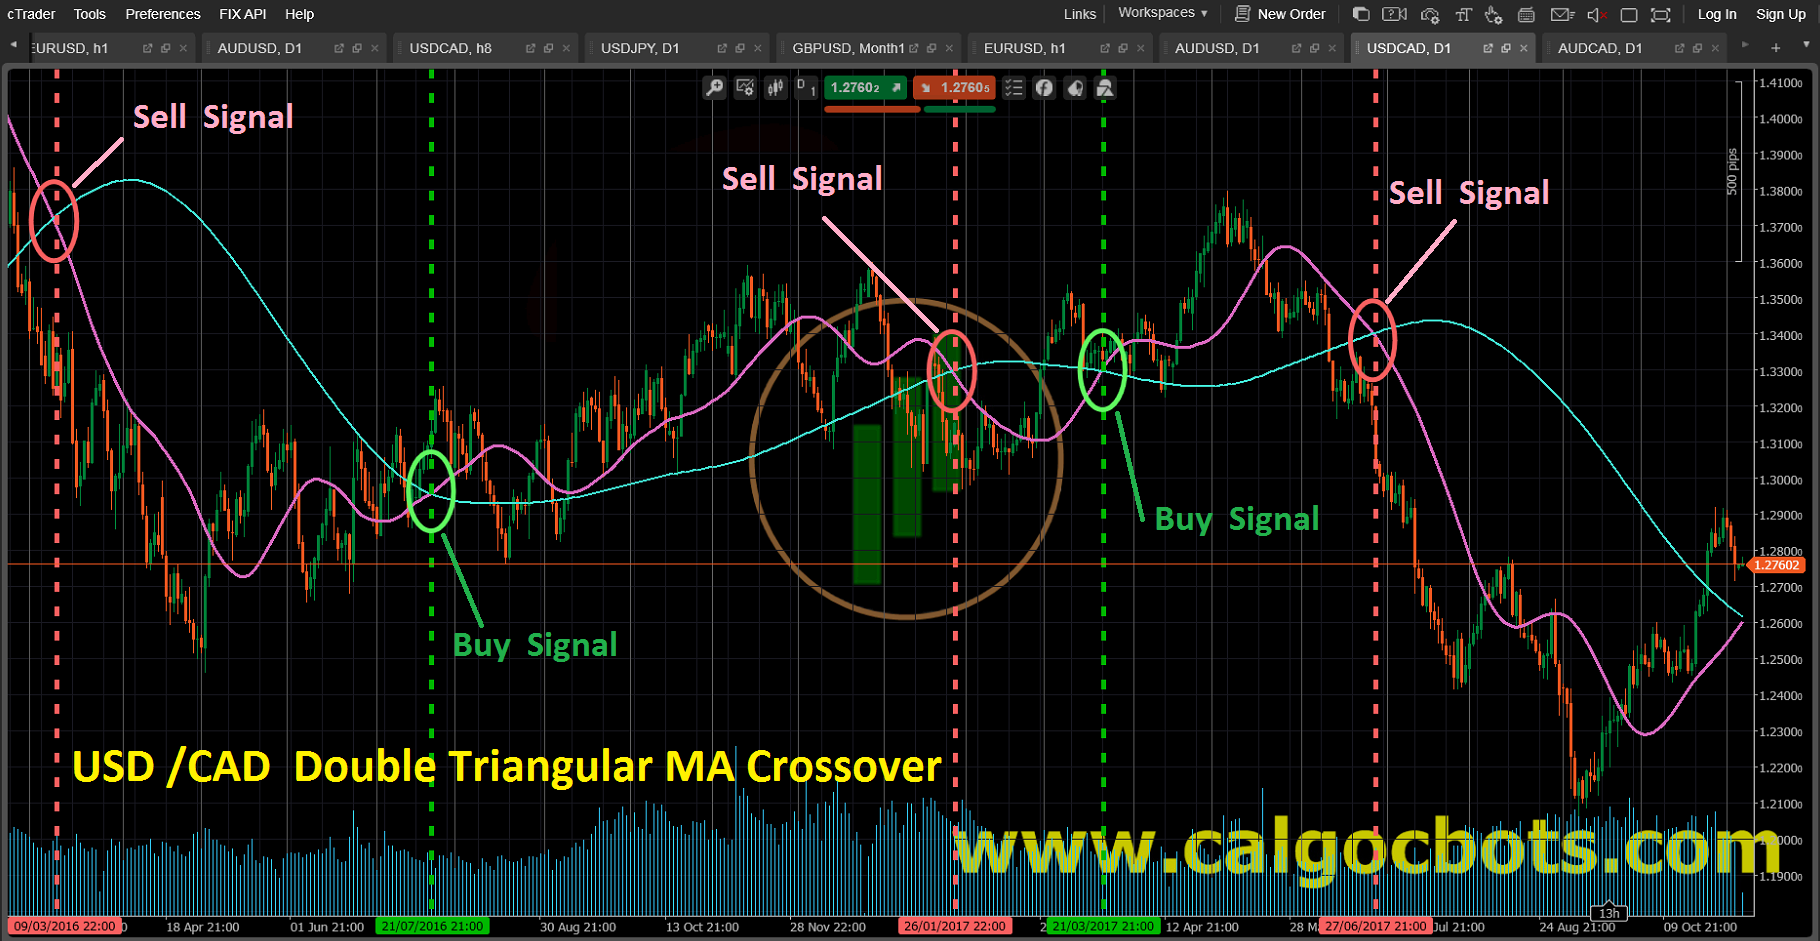 Double Triangularl MA crossover_USD_CAD_Candlestick_chart_cAlgo_cBots_cTrader_01